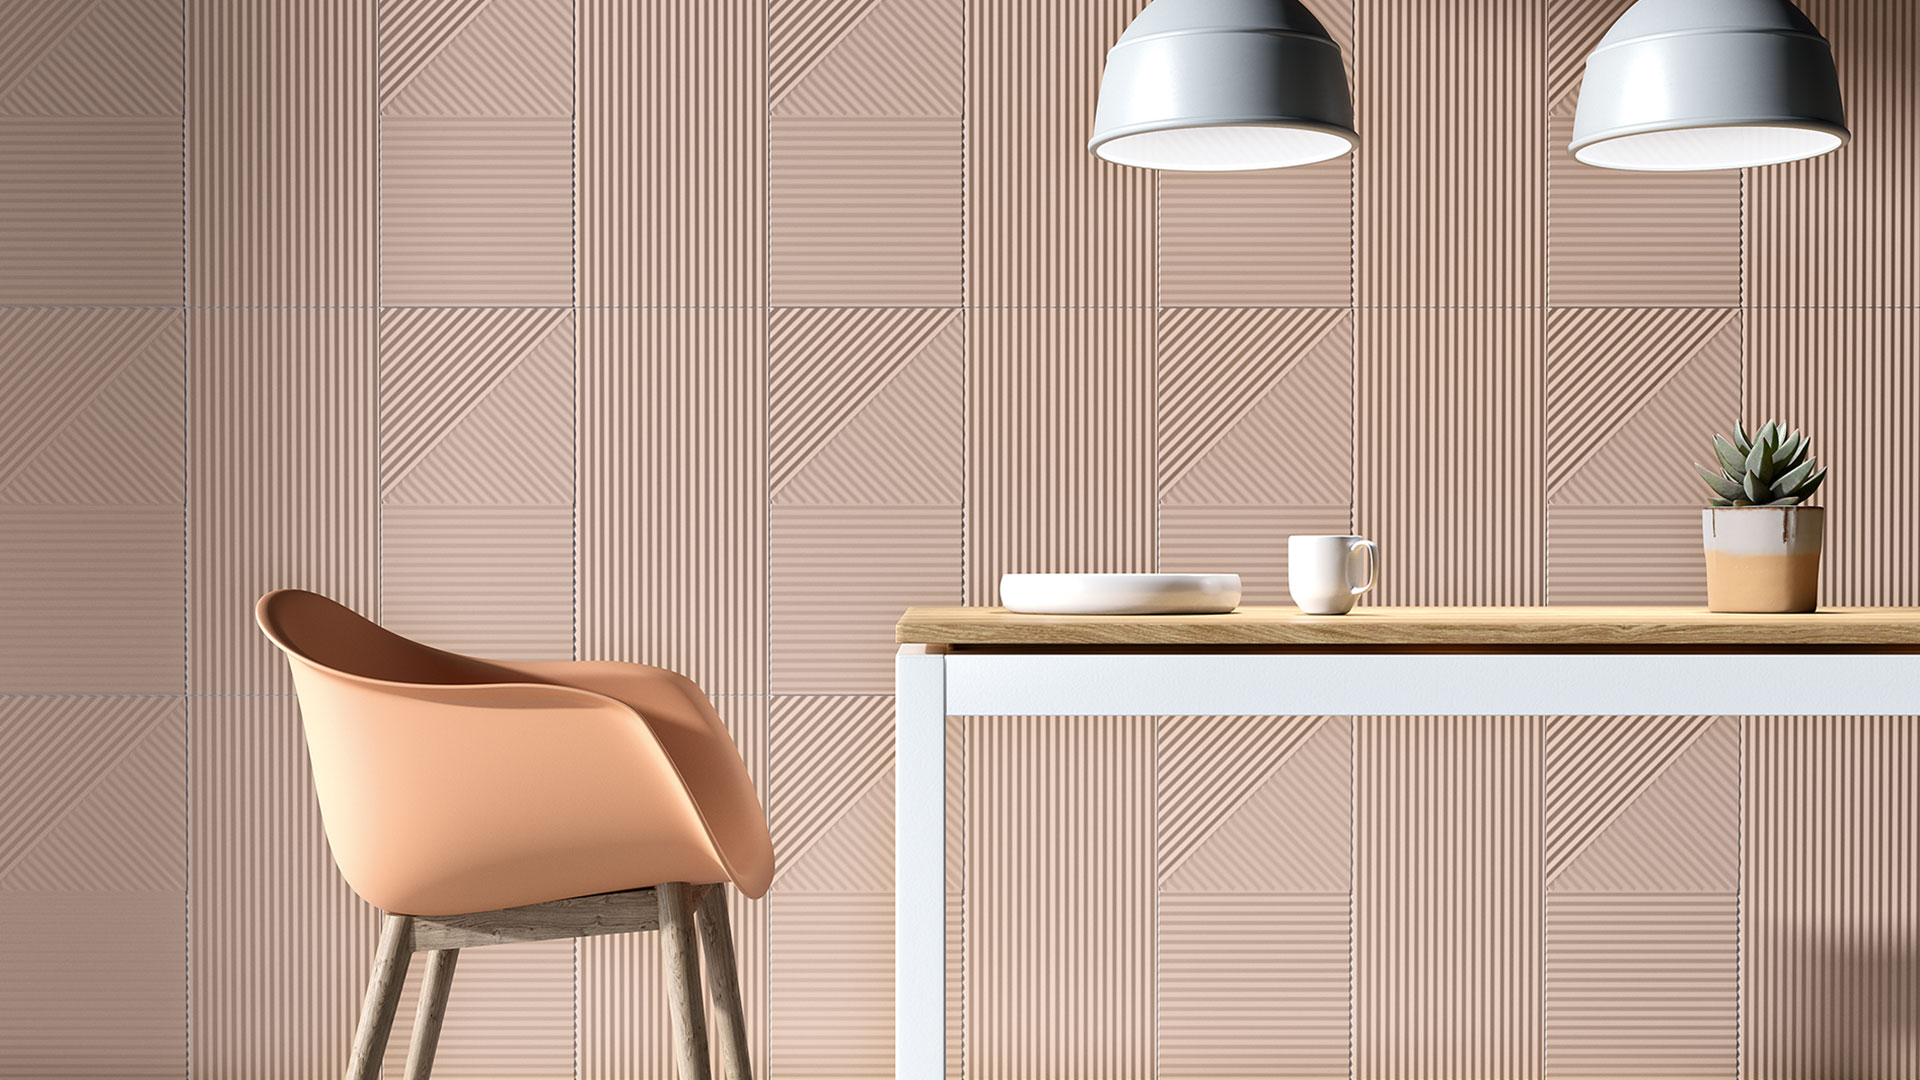 Cookie policy del sito www coemfioranesecoverings com | Coverings